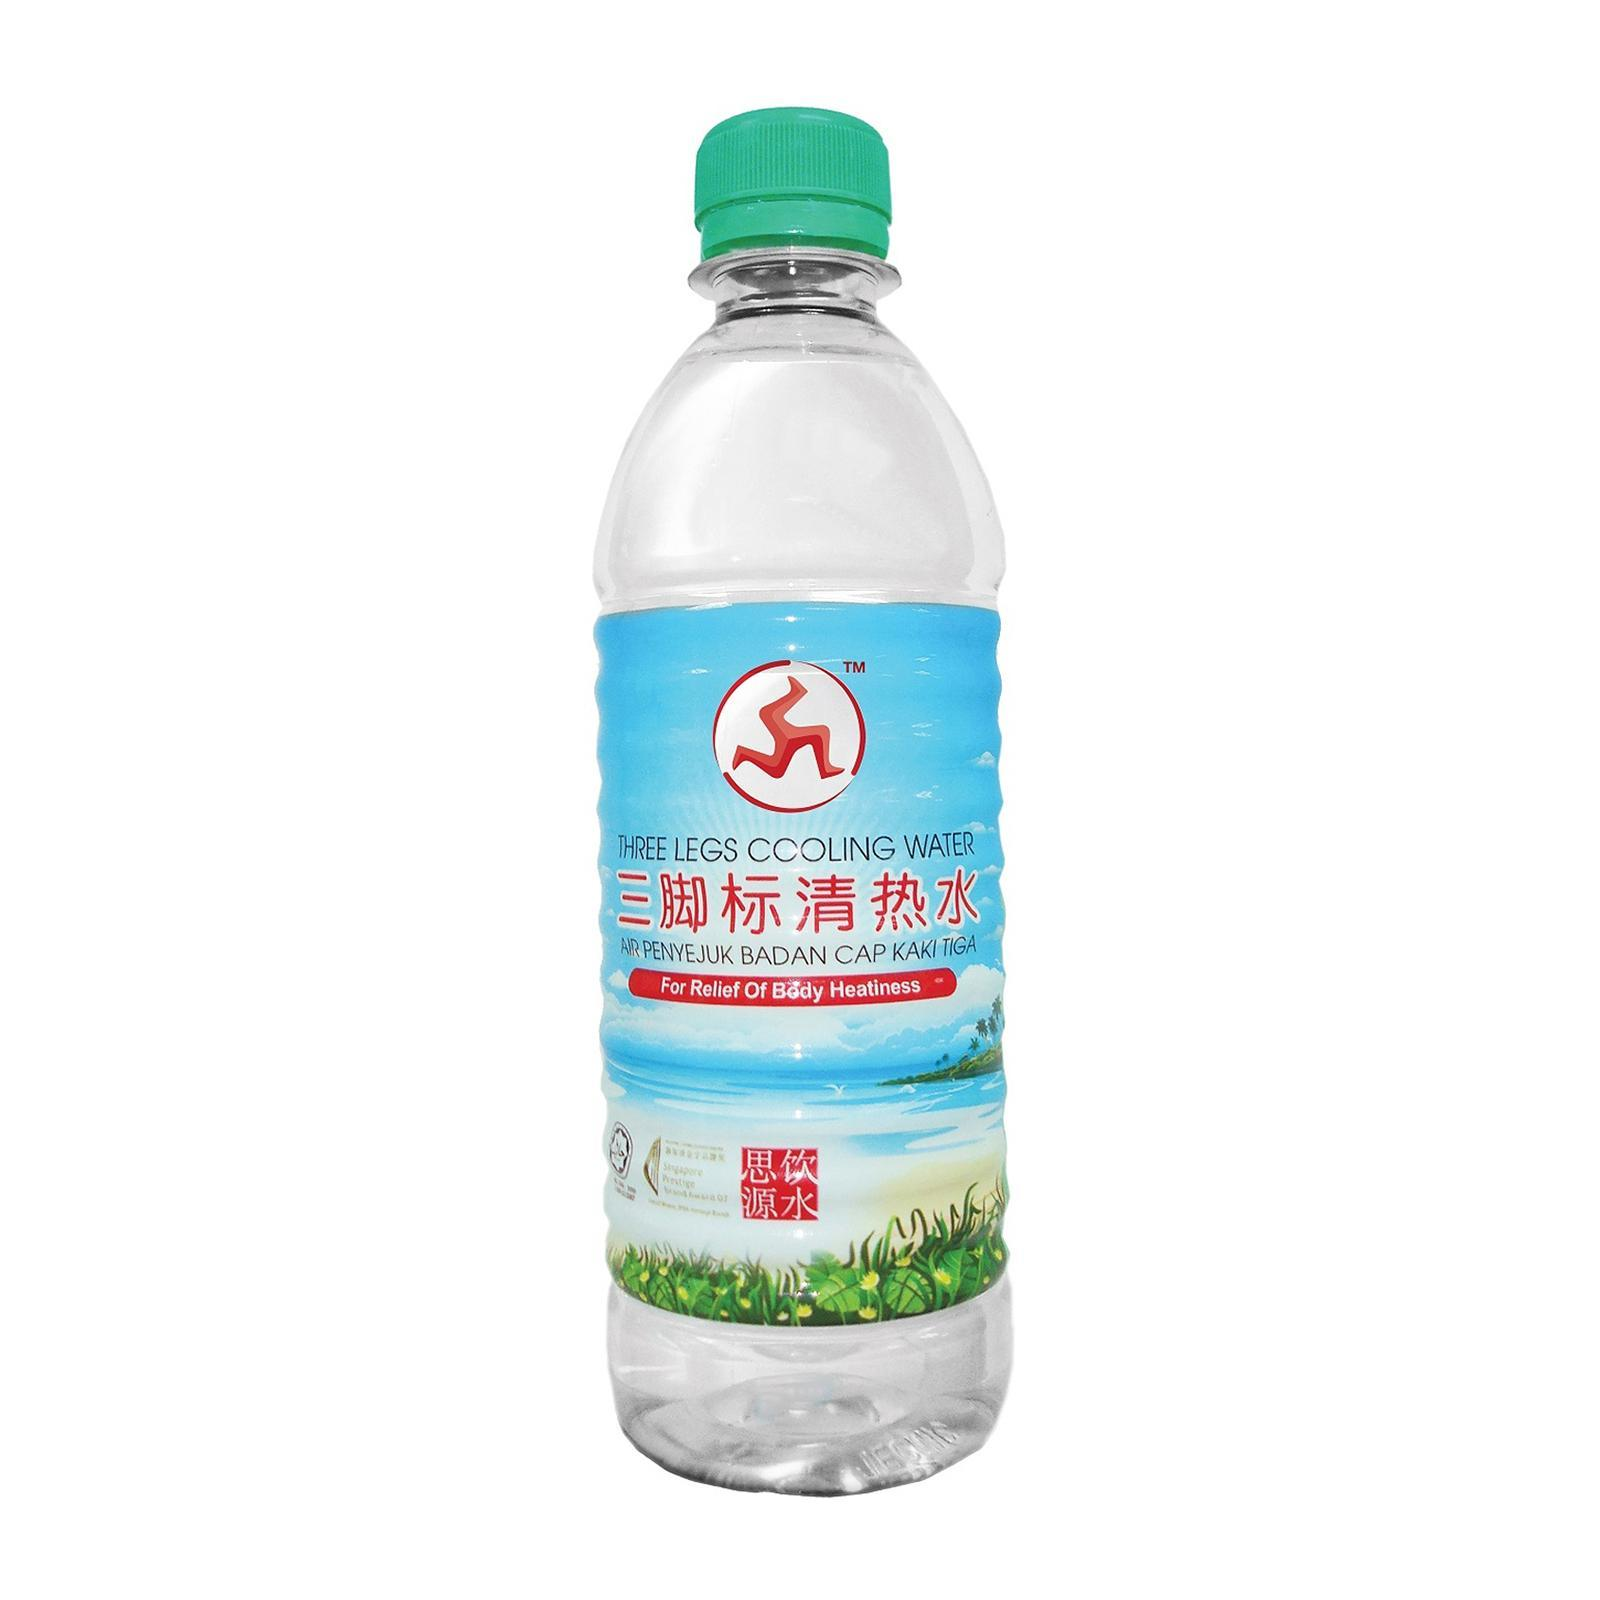 Three Legs Cooling Water